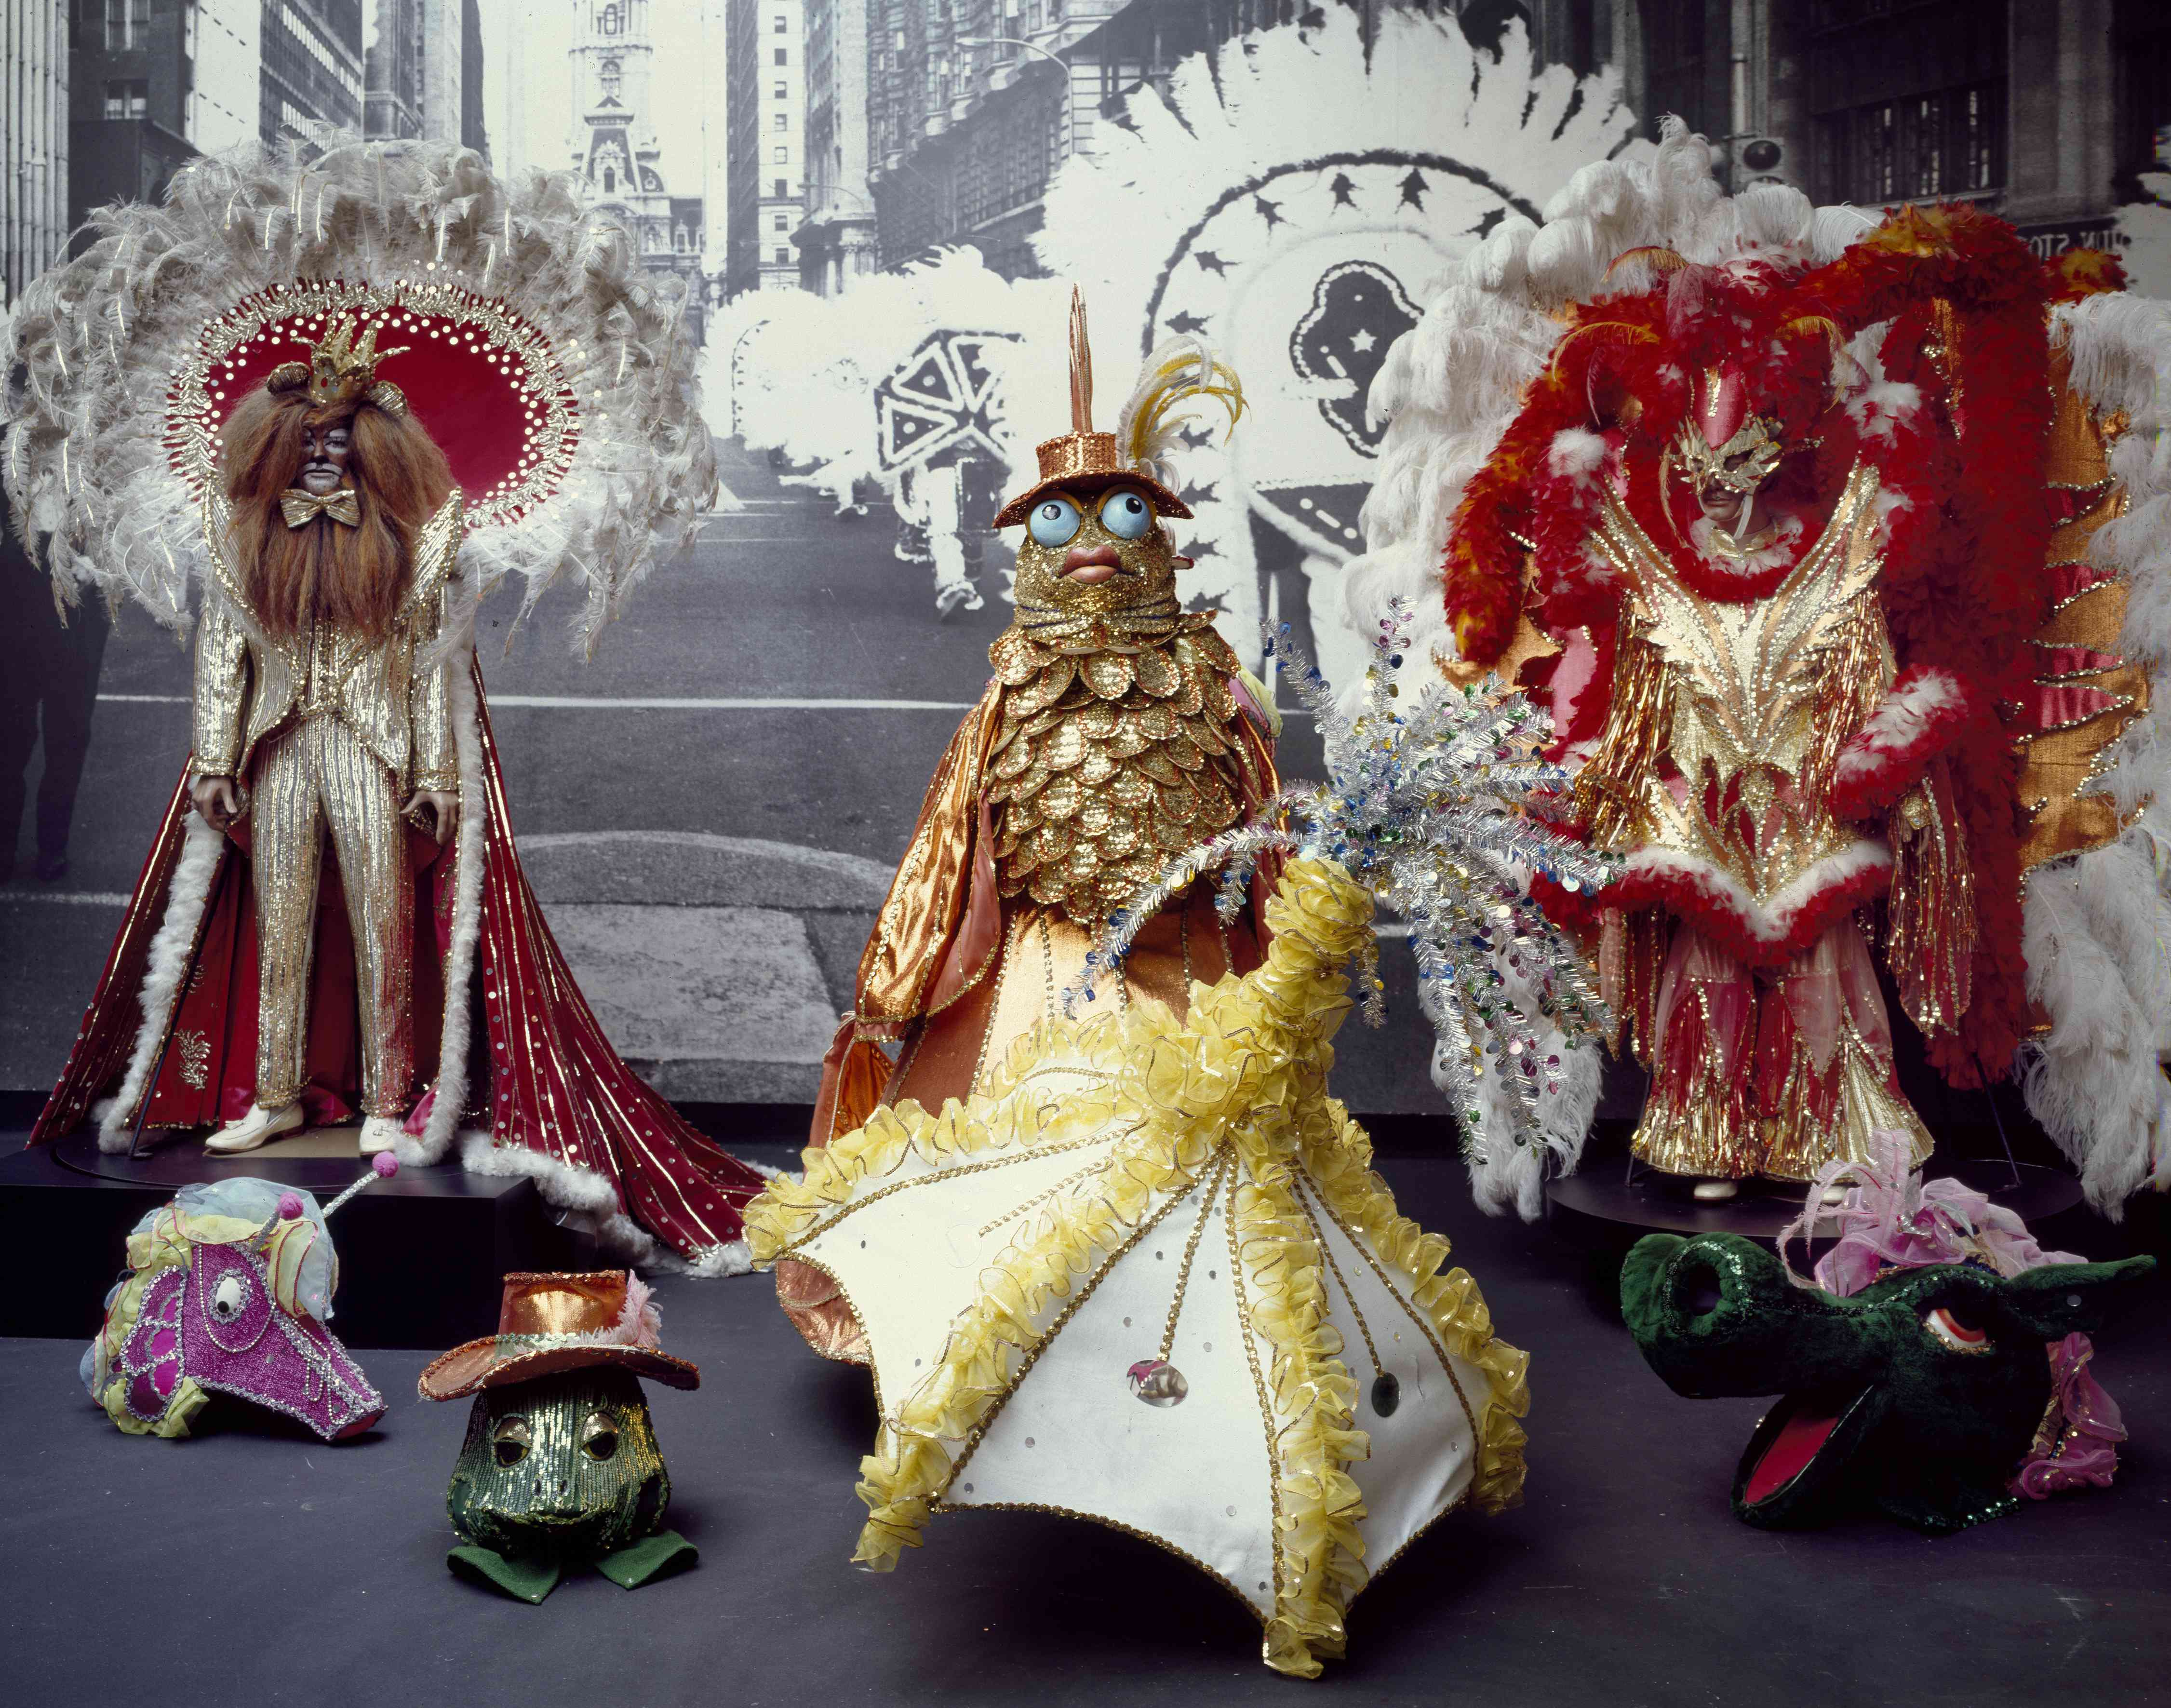 Colorful costumes at the Mummers Museum in South Philadelphia, Pennsylvania